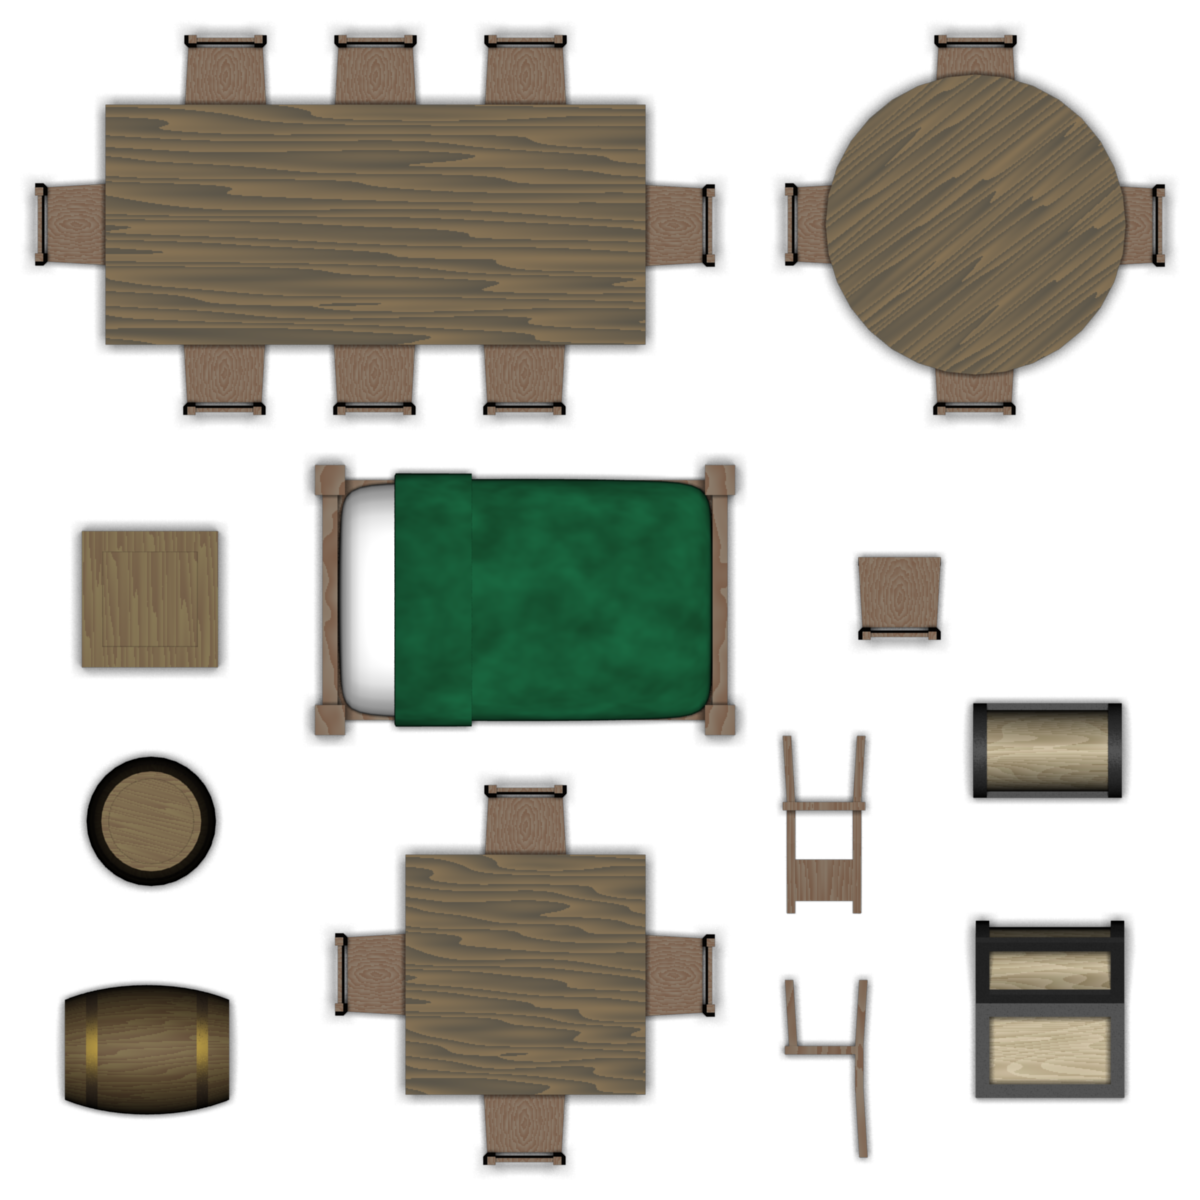 Download chair png images transparent gallery - Dungeon Furniture Set By Pfunked On Deviantart